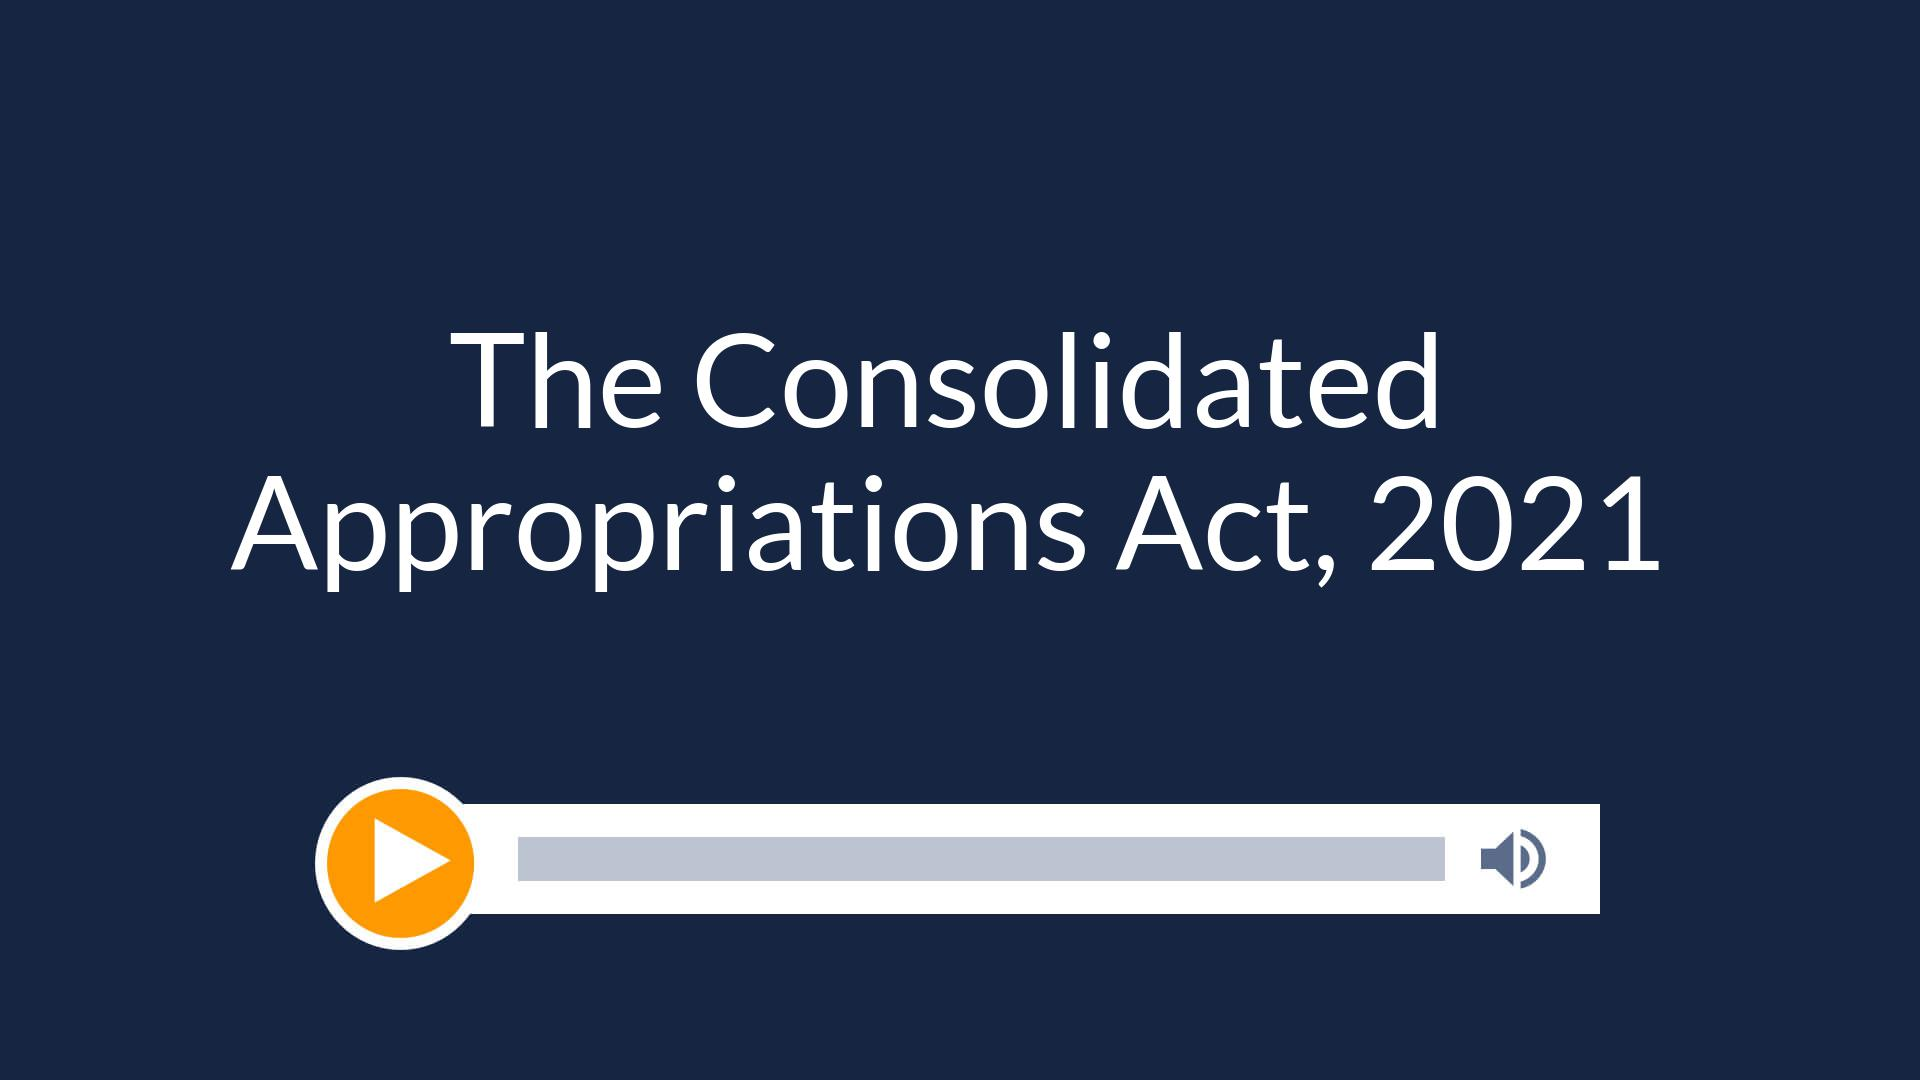 The Consolidated Appropriations Act, 2021